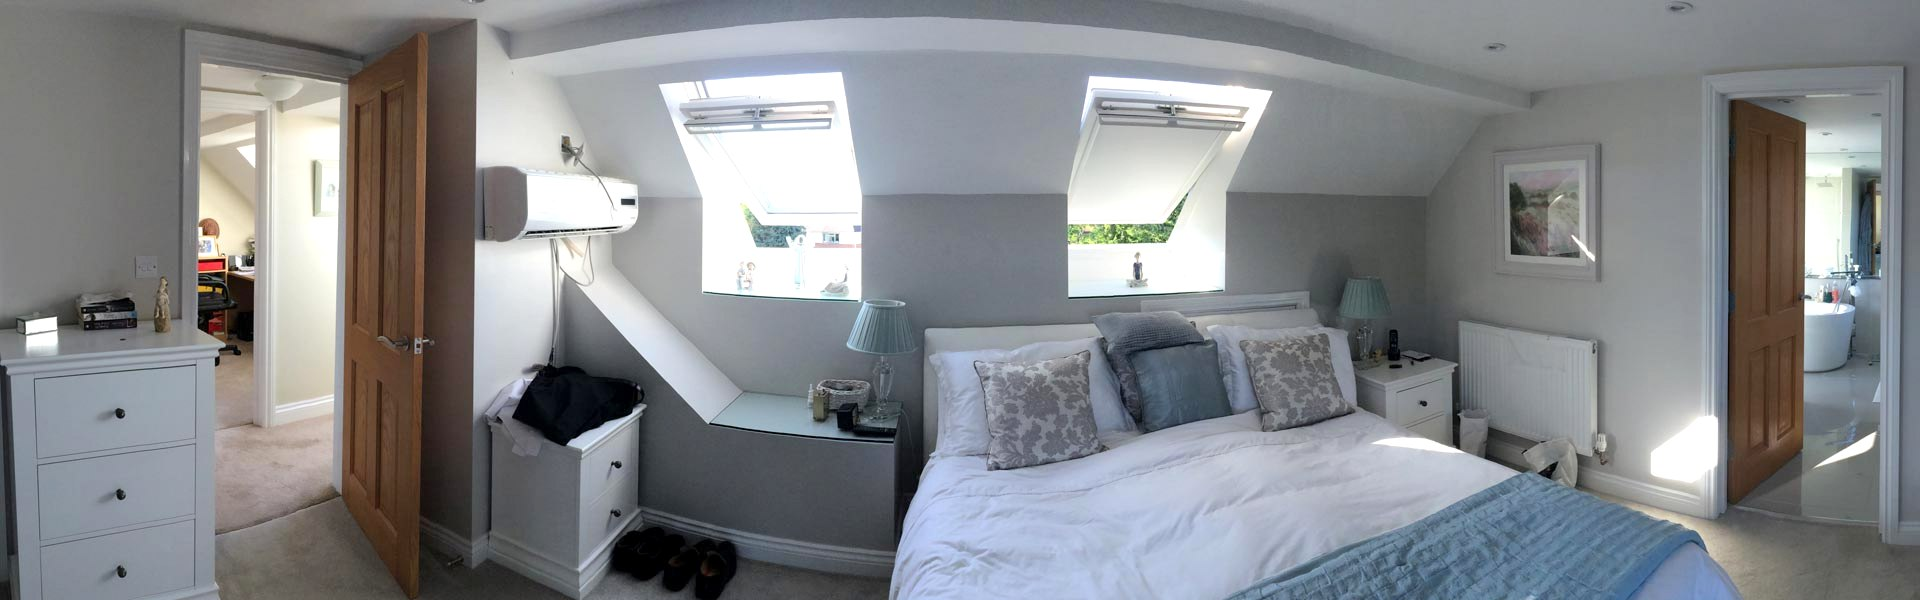 Loft Conversion by Apex Loft Conversions